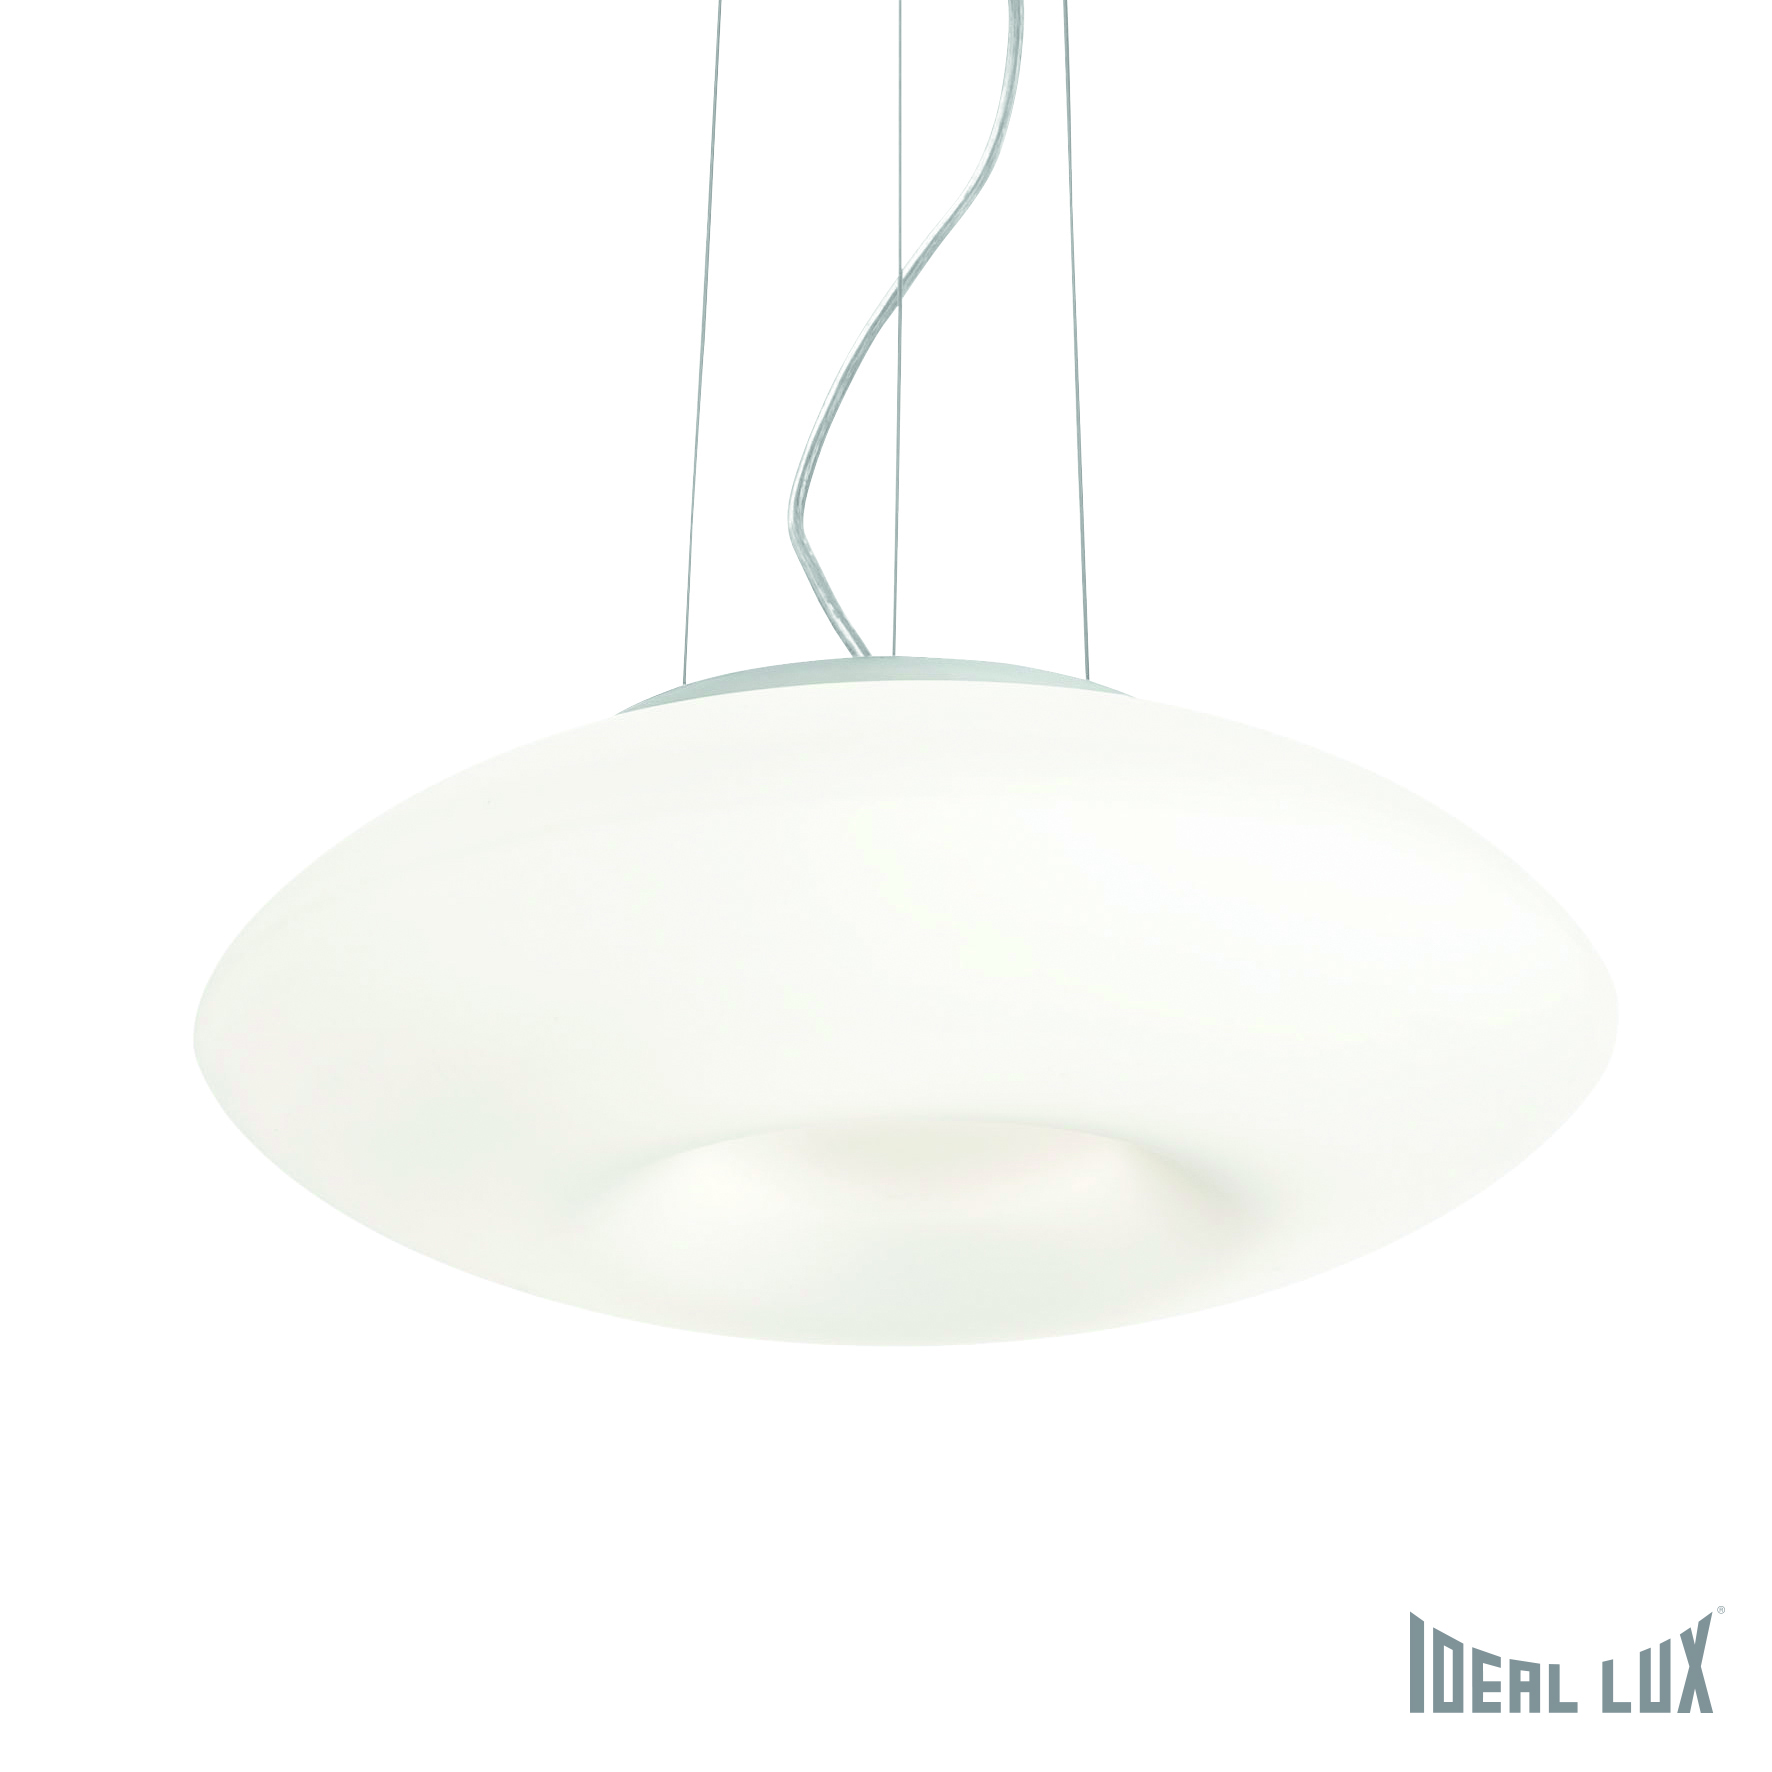 Светильник подвесной Ideal Lux Glory GLORY SP3 D40 ideal lux люстра ideal lux le roy sp3